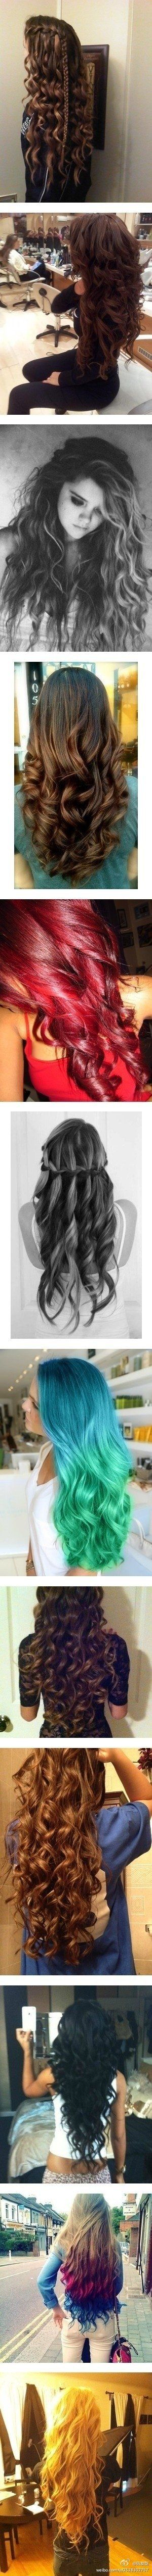 #hairstlye DIY http://www.tinydeal.com/18-x-diy-perm-hairstyle-curler-px23868-p-31933.html